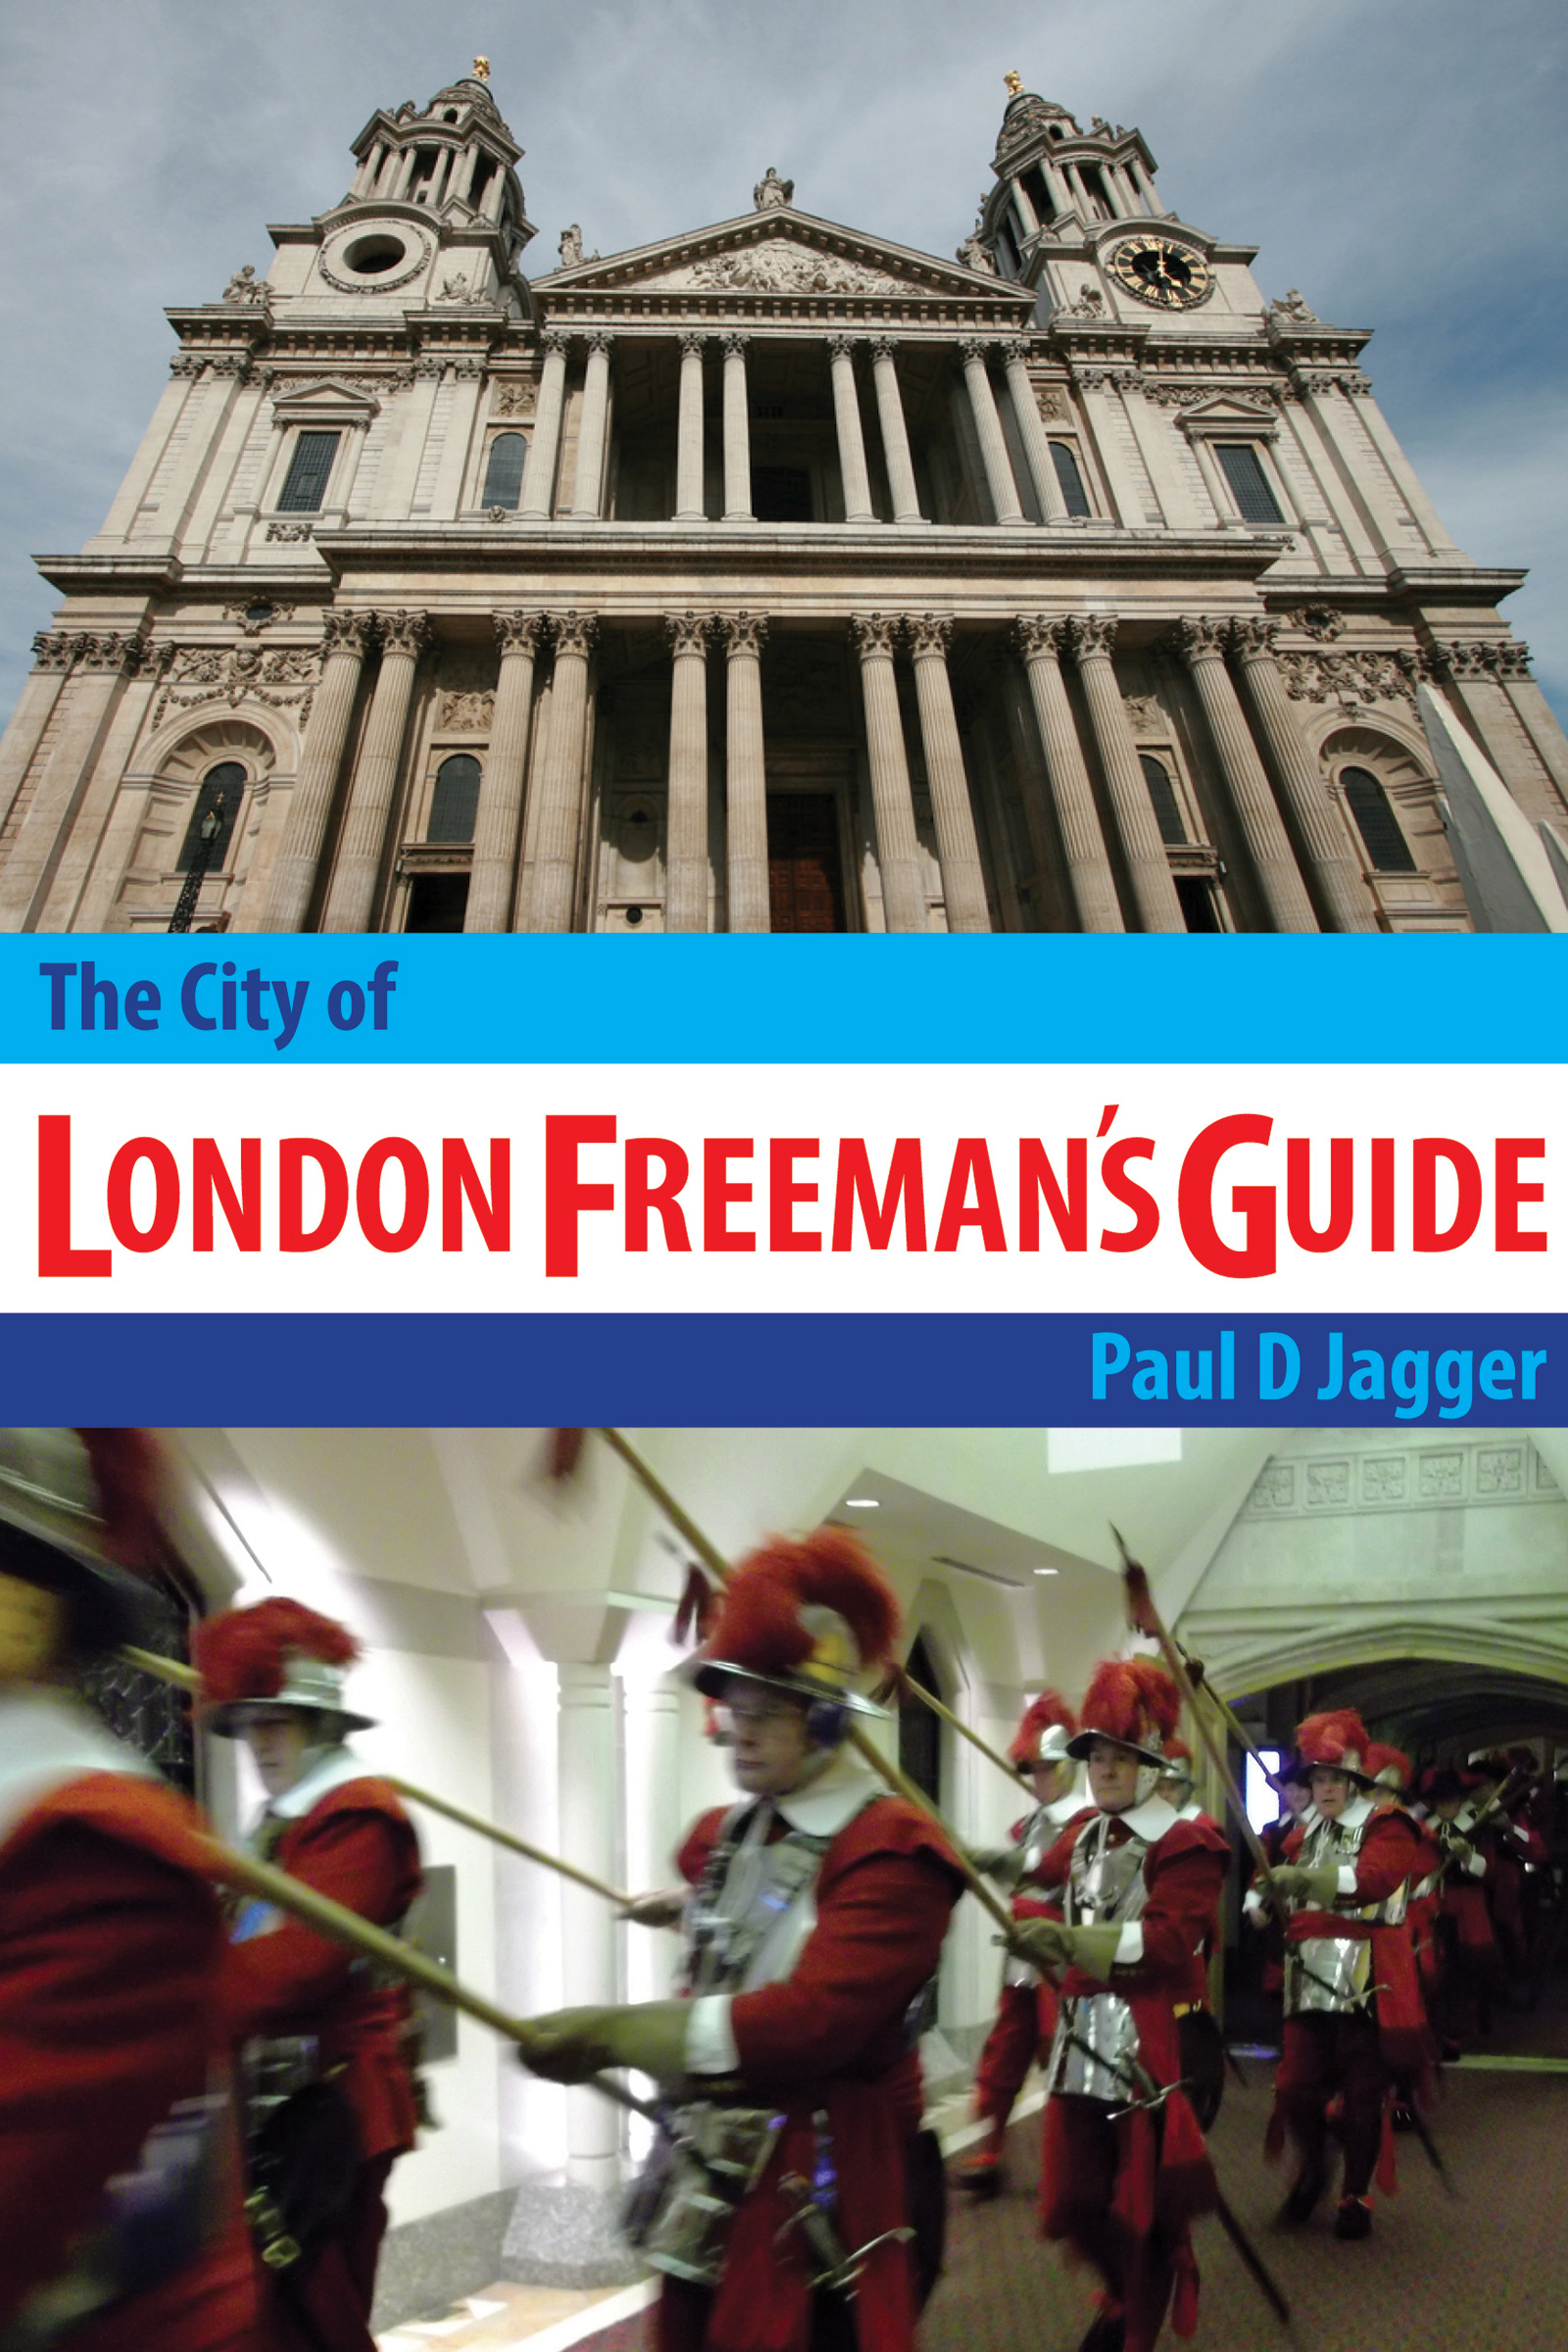 The City of London Freeman's Guide